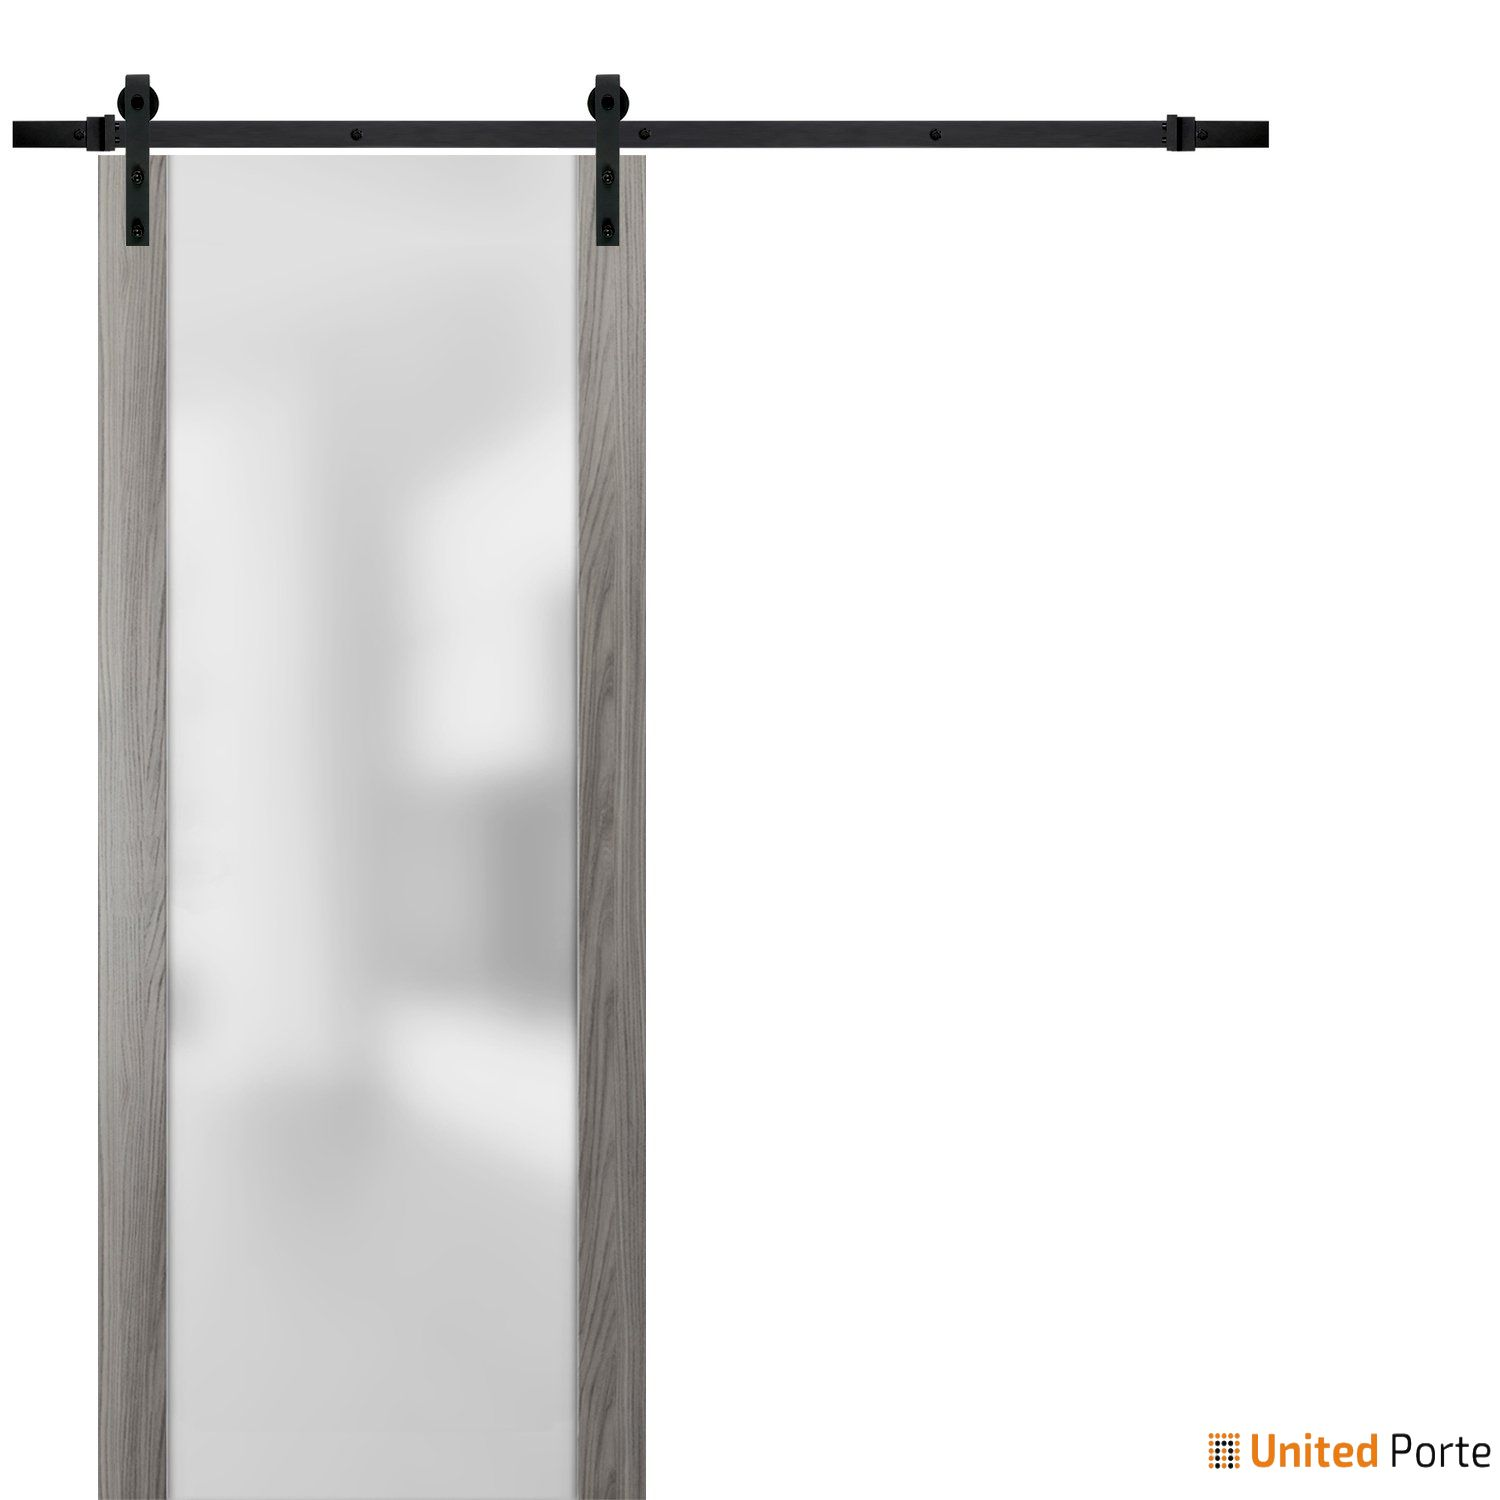 Planum 4114 Ginger Ash Sturdy Barn Door Frosted Tempered Glass with Black Hardware | Modern Solid Panel Interior Barn Doors